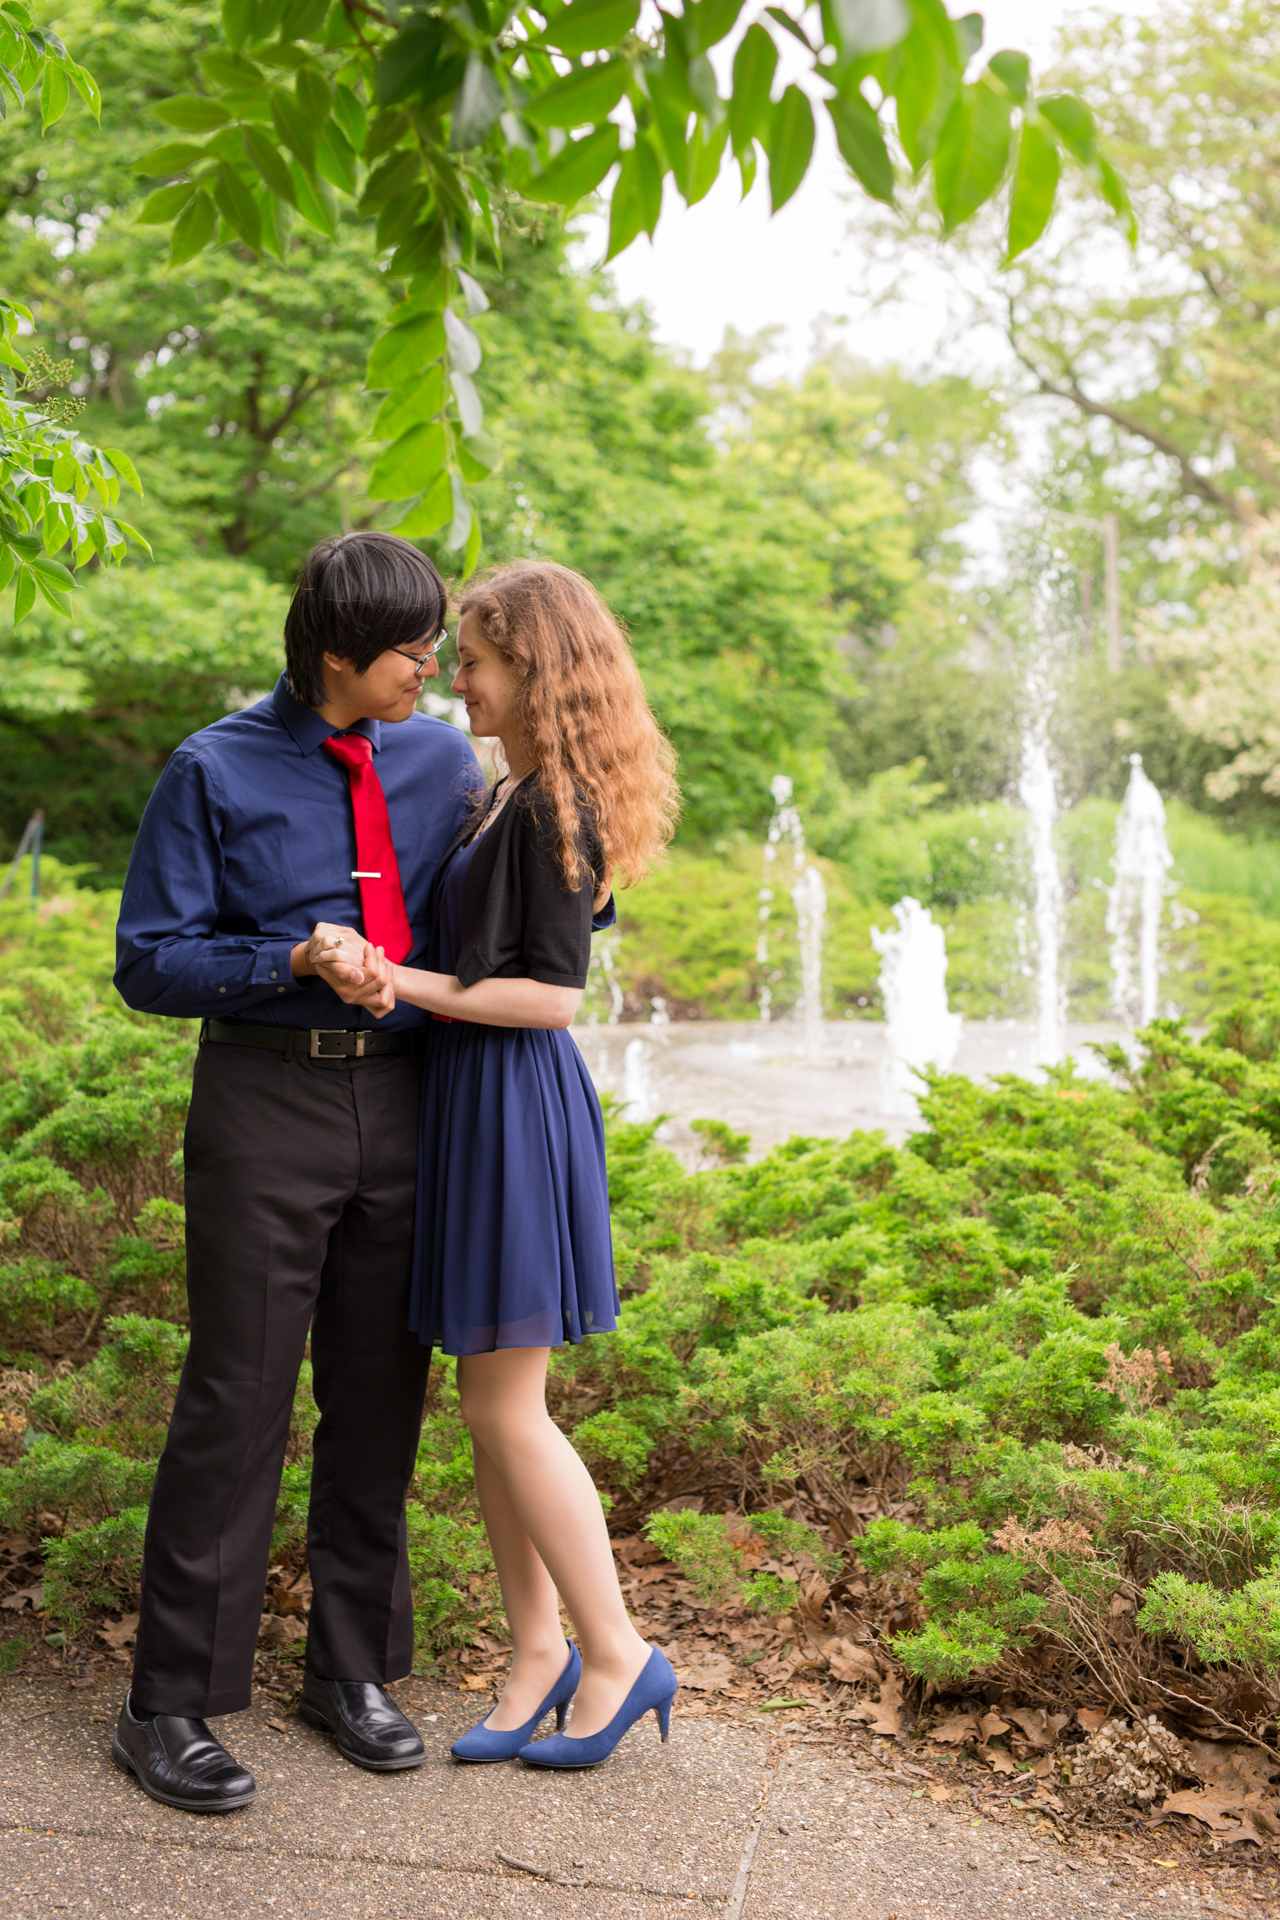 luthy botanical gardens greenhouse engagement biracial couple peoria centrail illinois wedding photographer photographers bloomington normal illinois valley lasalle peru ottawa-41.jpg